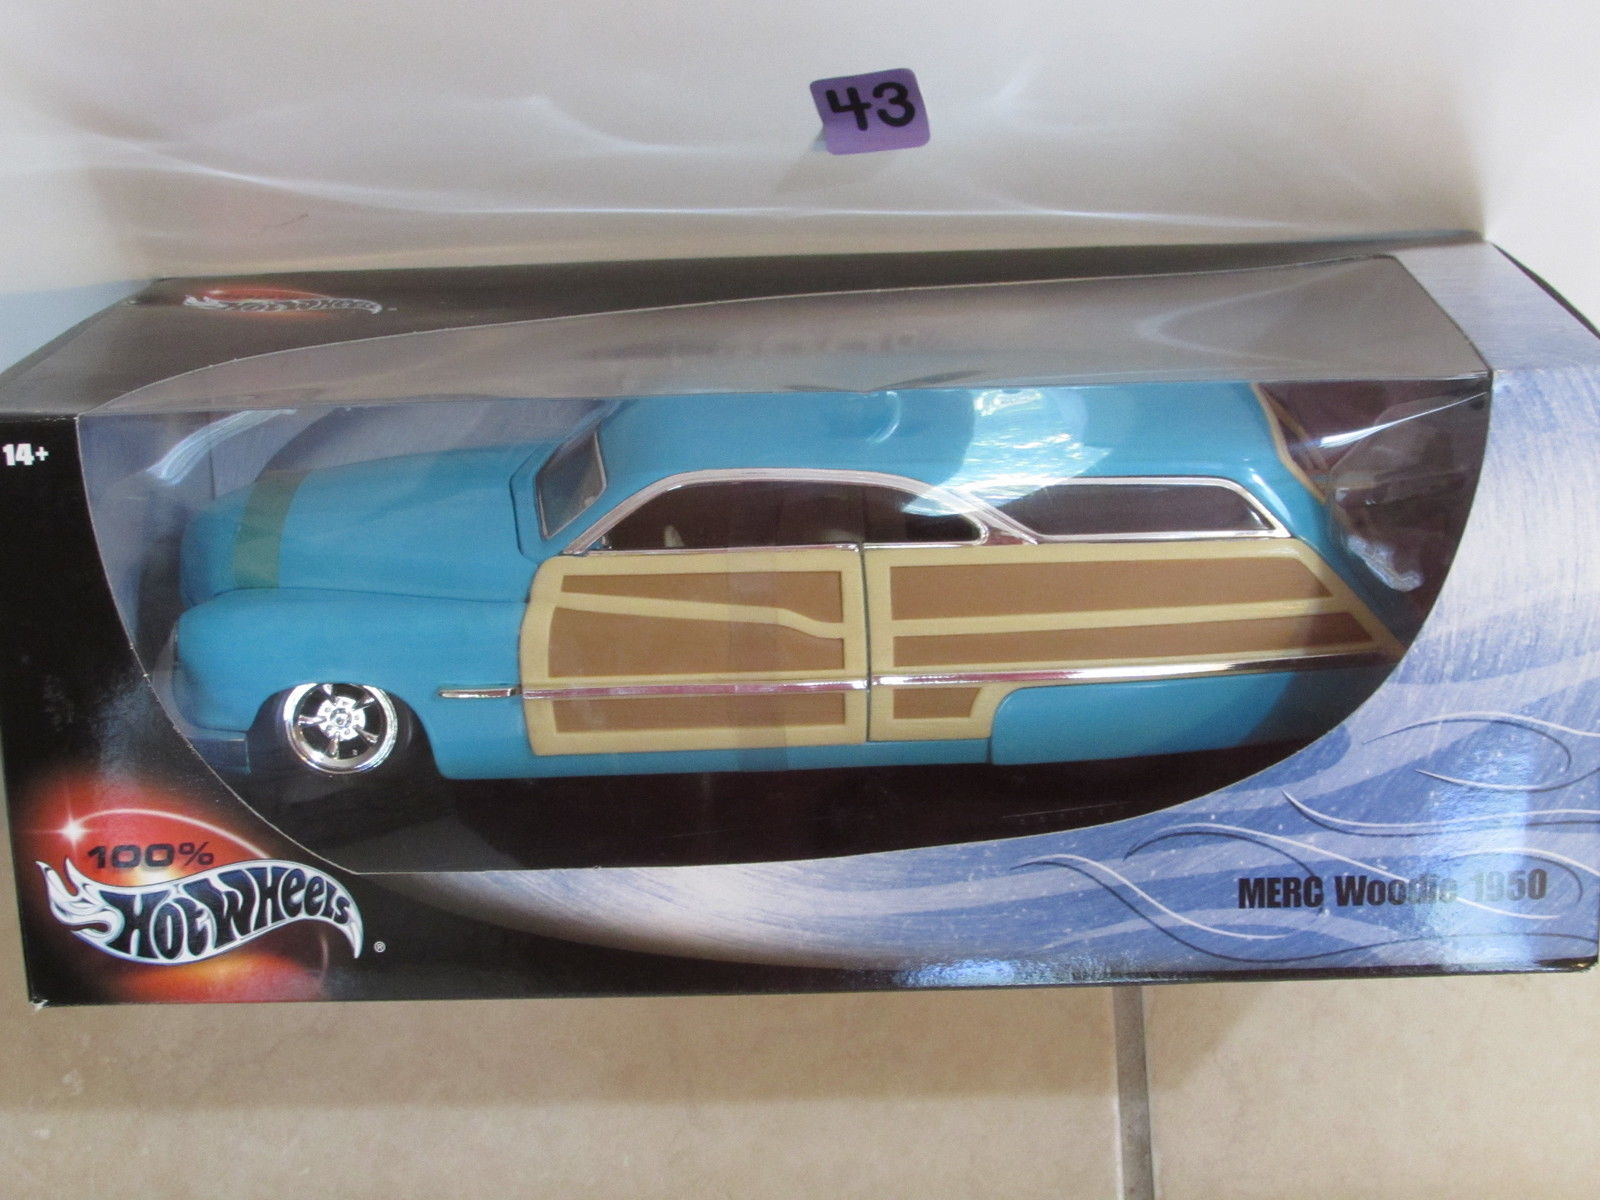 100% HOT WHEELS 2000 - 1950 MERC WOODIE SCALE 1:18